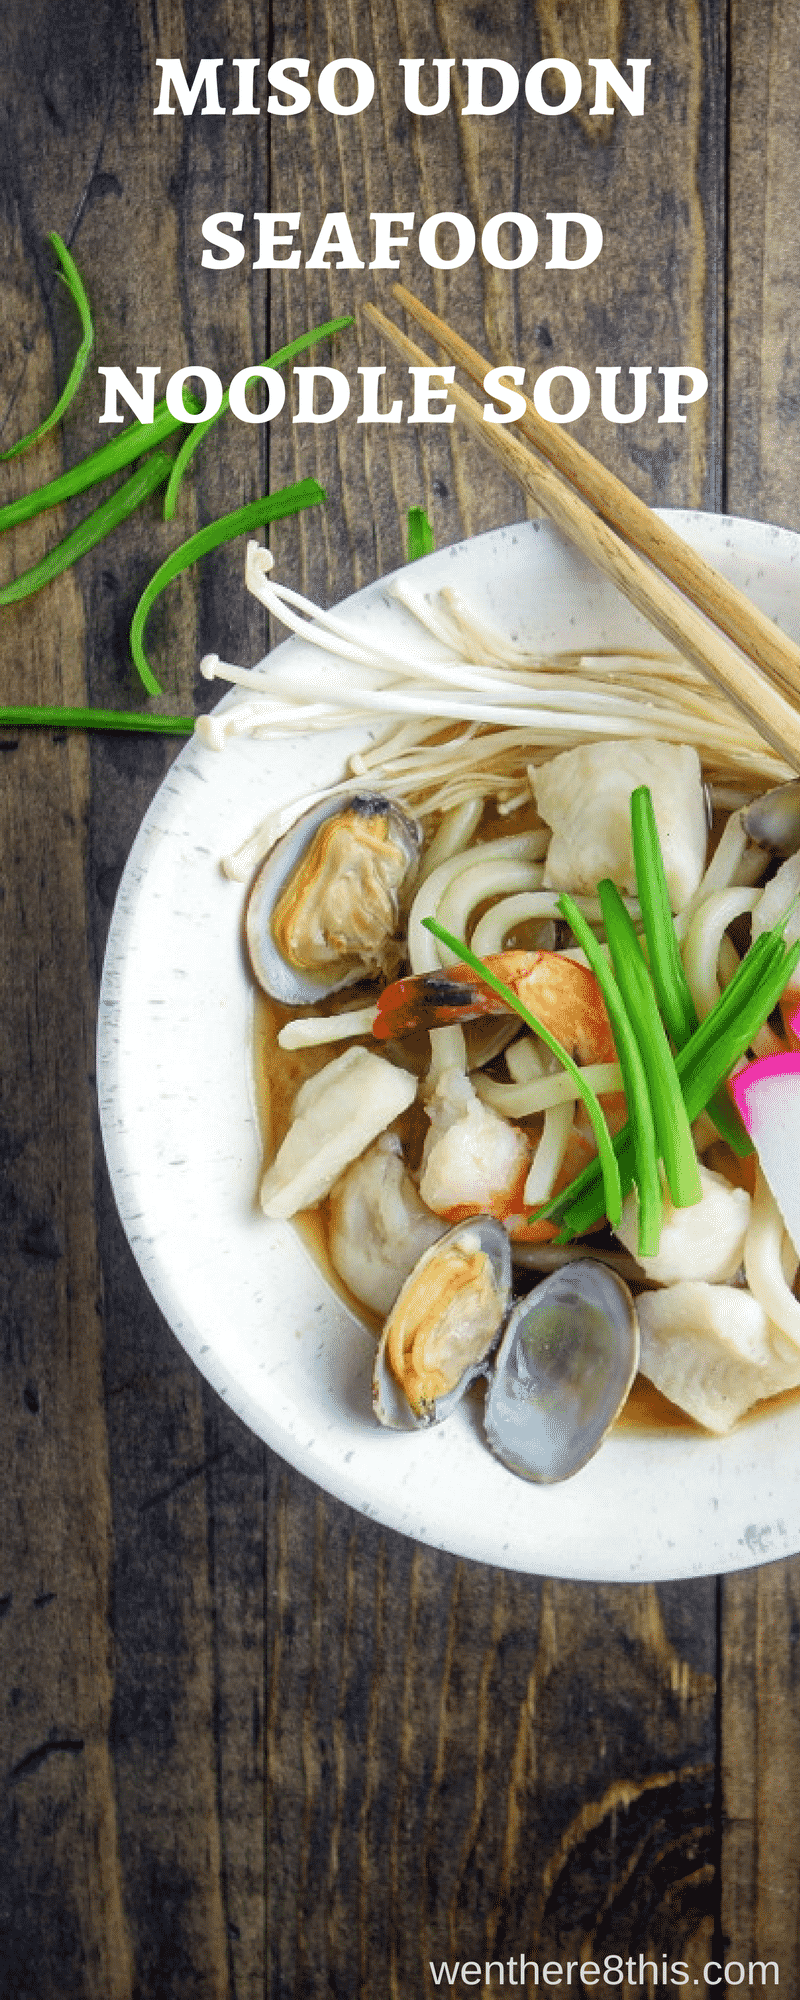 This Miso Udon Seafood Noodle Soup is a great way to start the New Year with amazing umami flavor, fresh seafood and a light, delicious broth!miso soup | udon noodle soup | japanese soup recipes | japanese recipes | noodle soup recipes | seafood stew | ramen noodles | soba noodles | easy udon noodle soup | japanese noodle soup | winter soup recipes | easy soup recipes